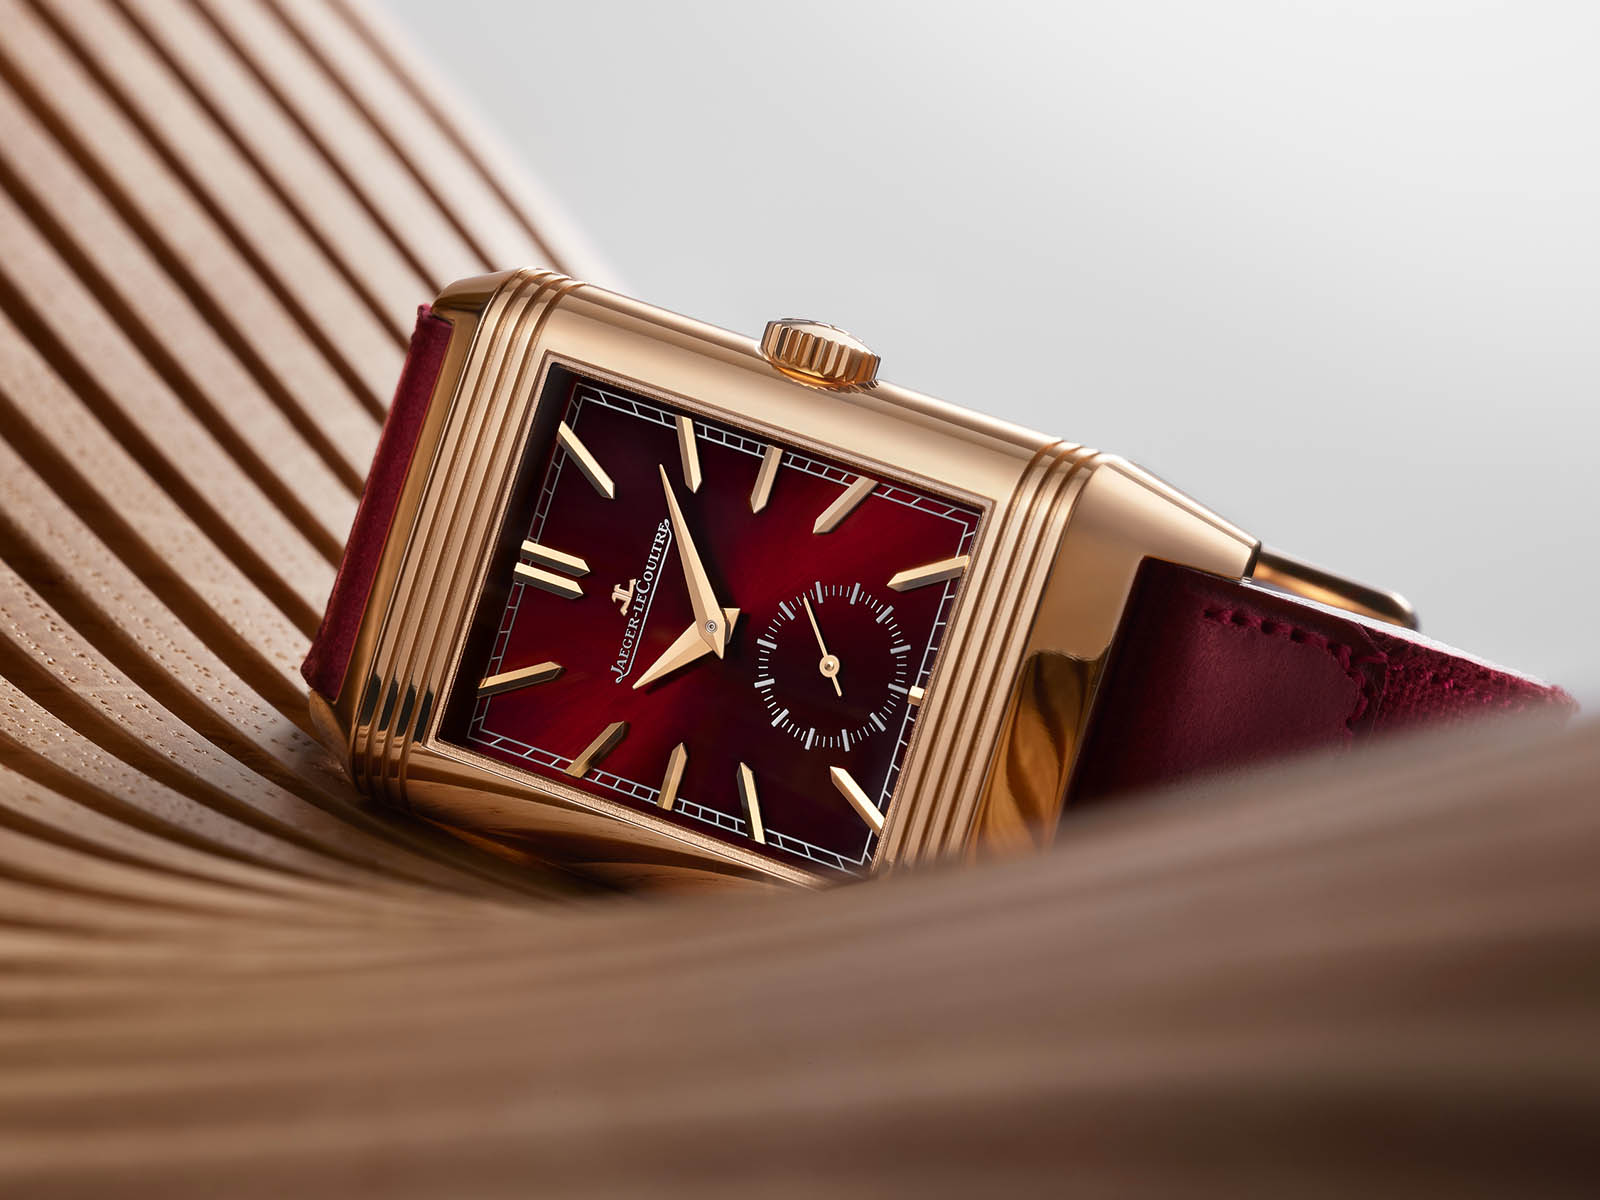 Jaeger-LeCoultre Neuheiten 2021: Watches & Wonders